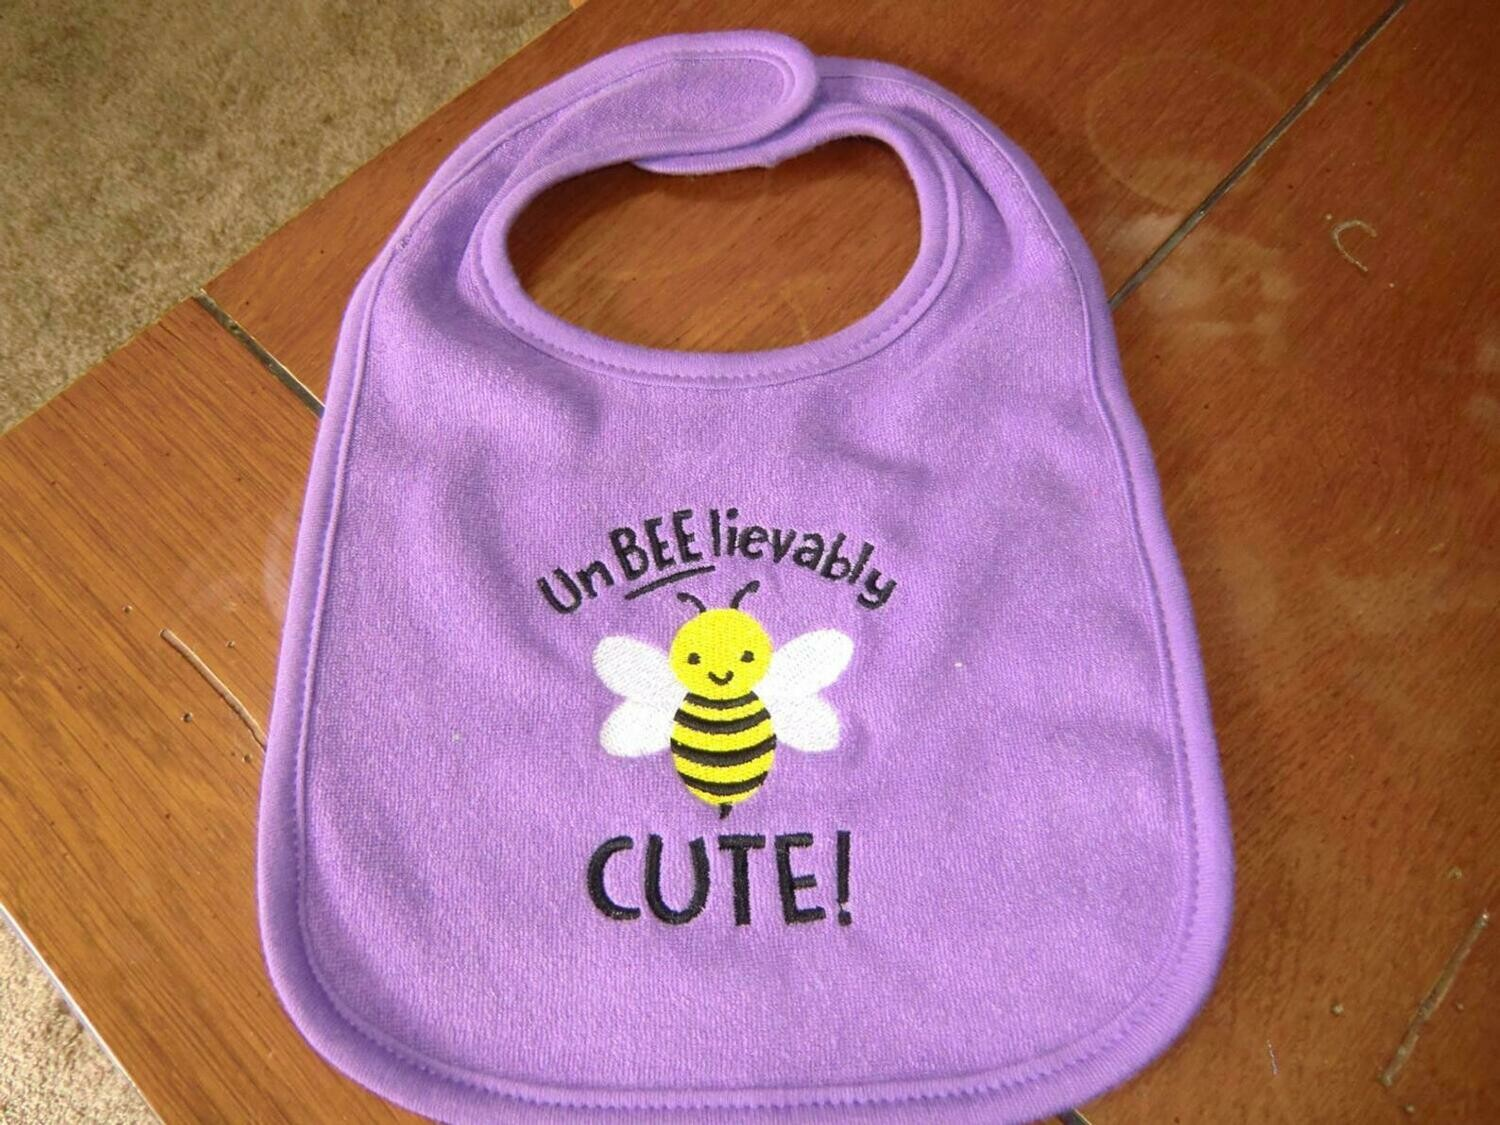 UnBEElievably Cute Baby Bibs